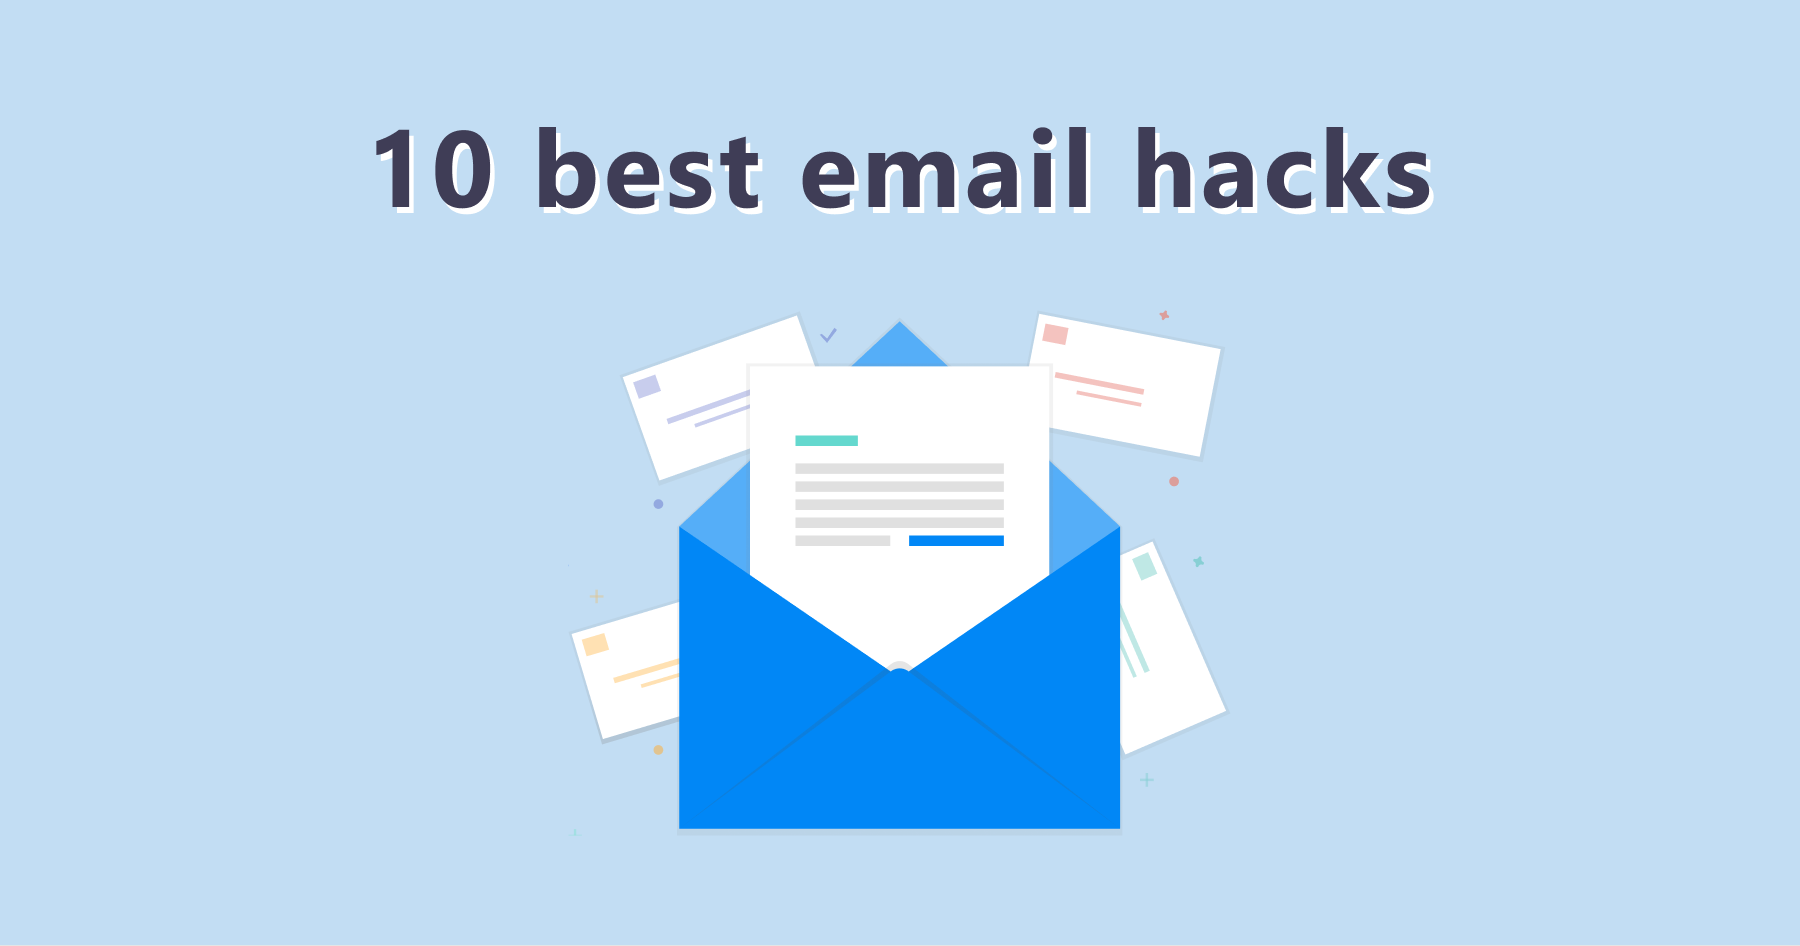 ScrumGenius' 10 Best Email Productivity Hacks